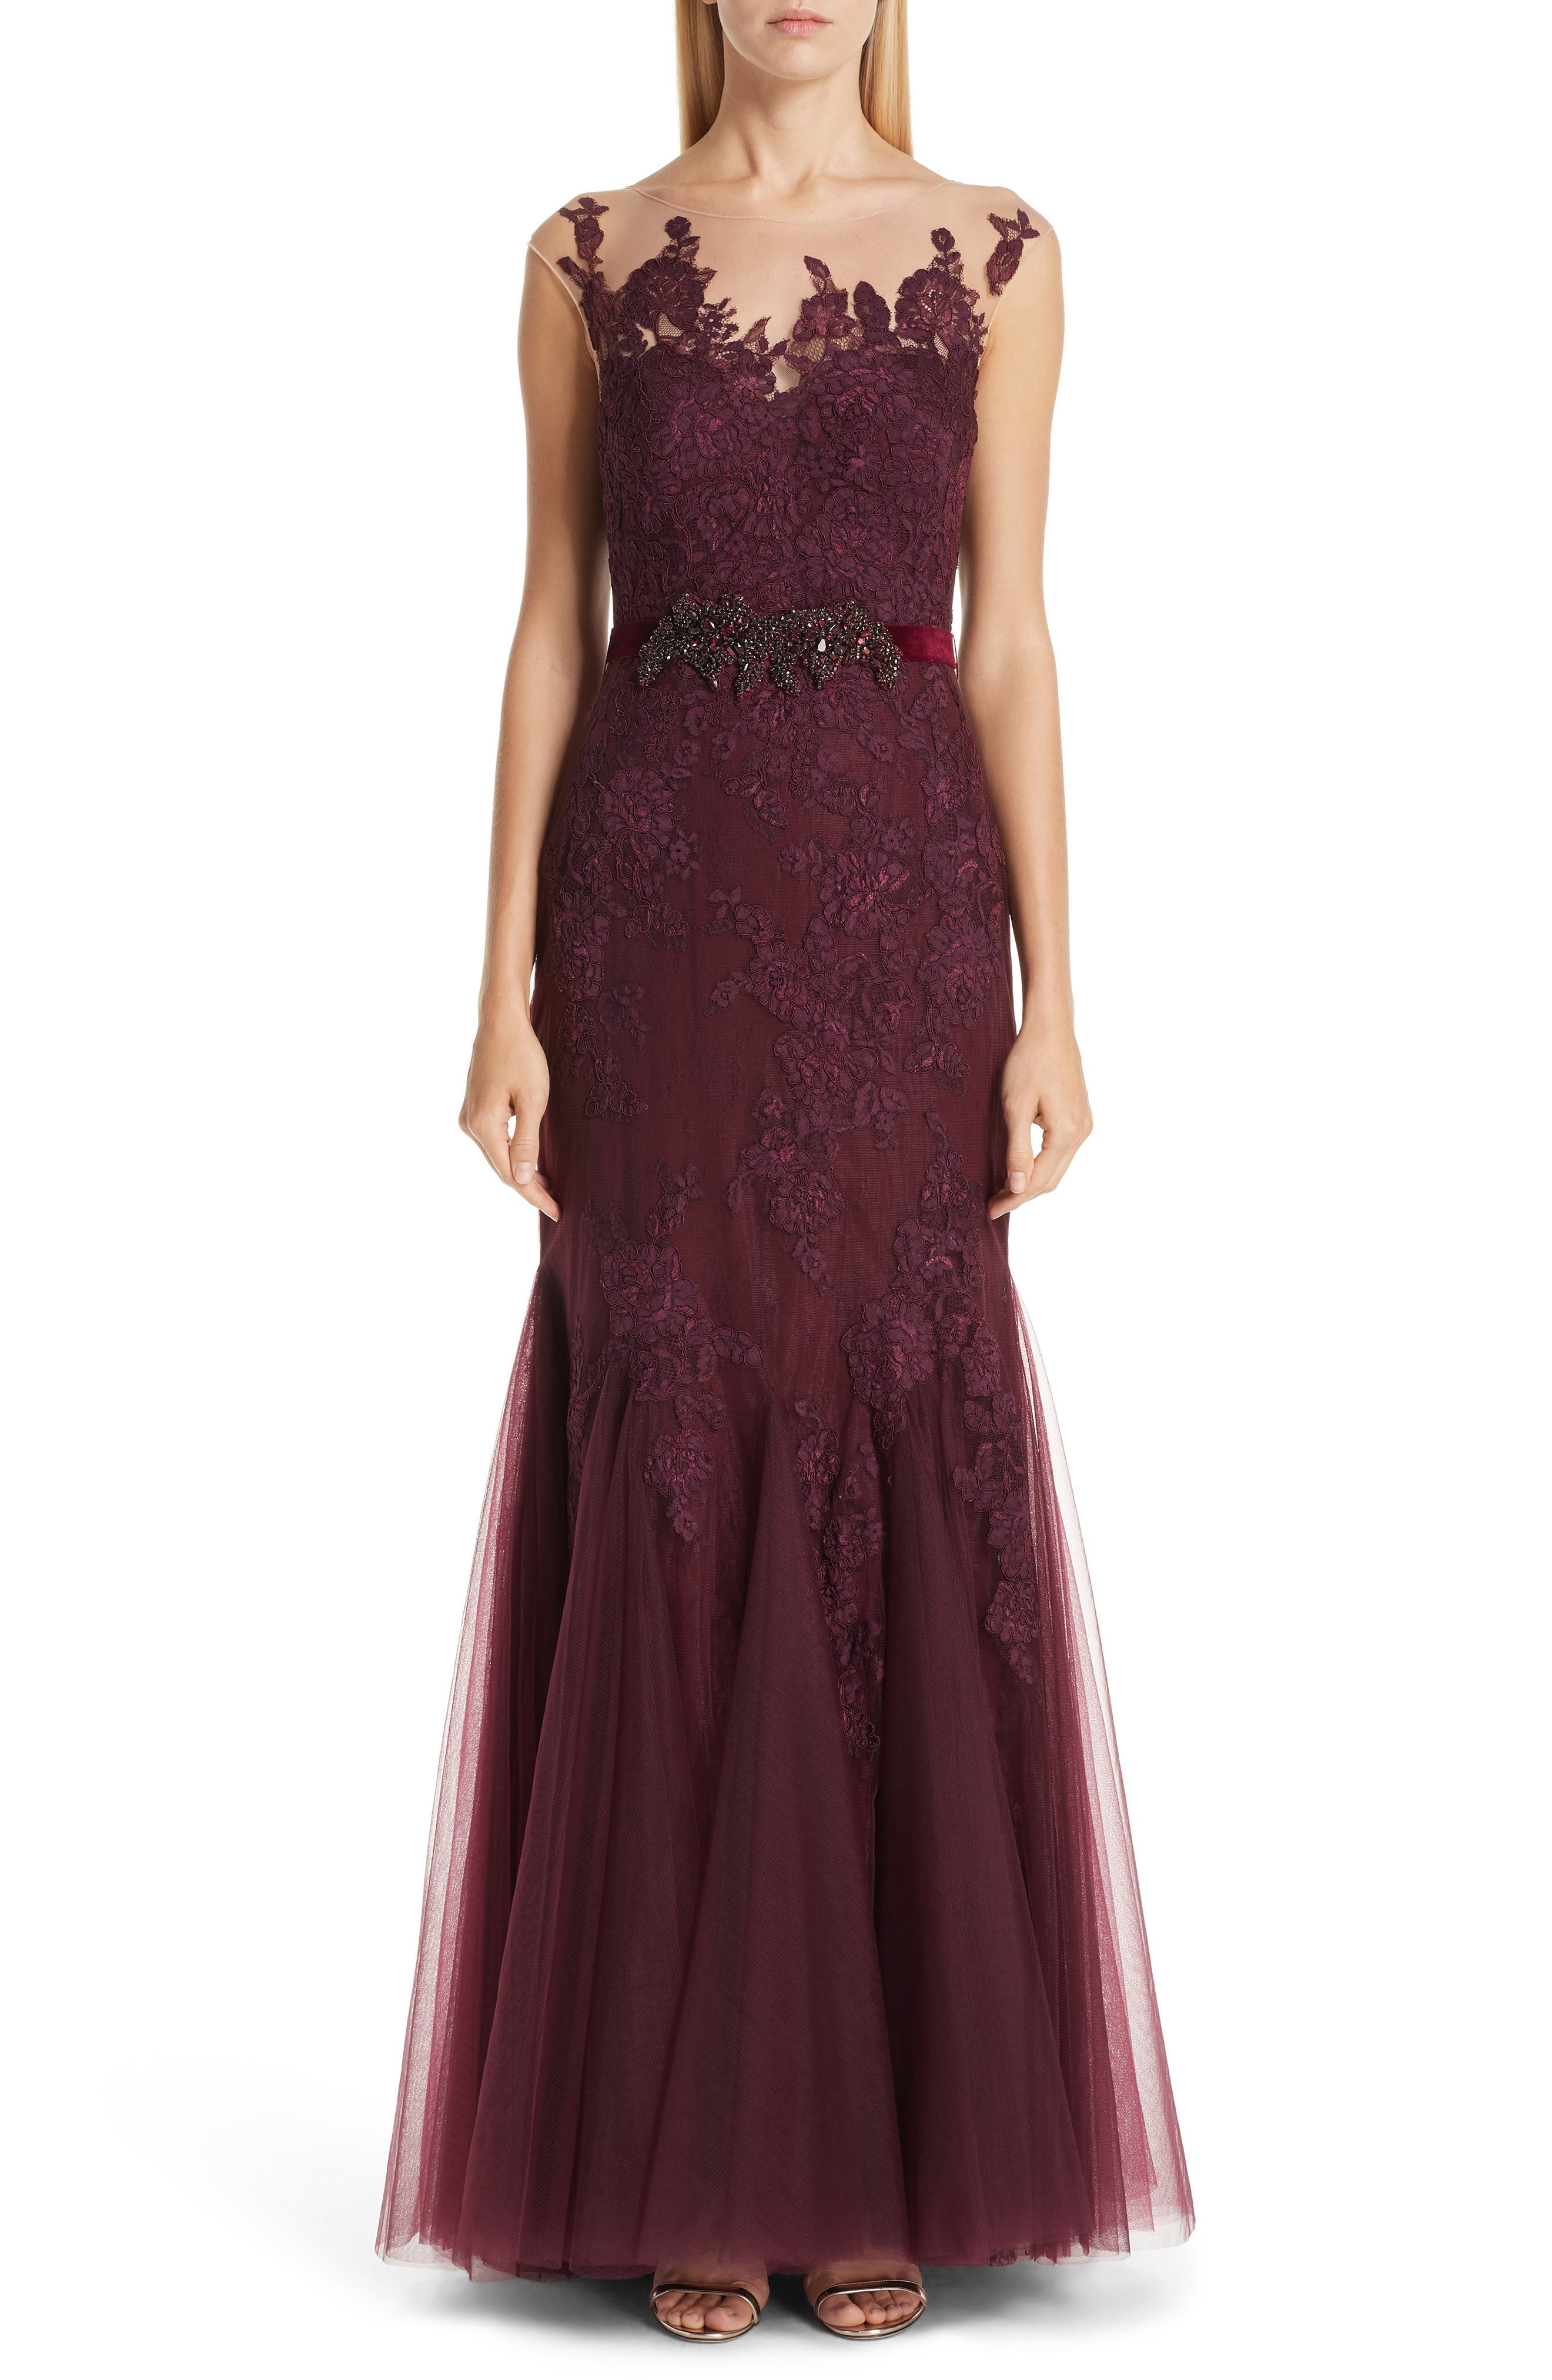 Badgley Mischka Collection Belted Illusion Neck Lace Trumpet Gown, Burgundy